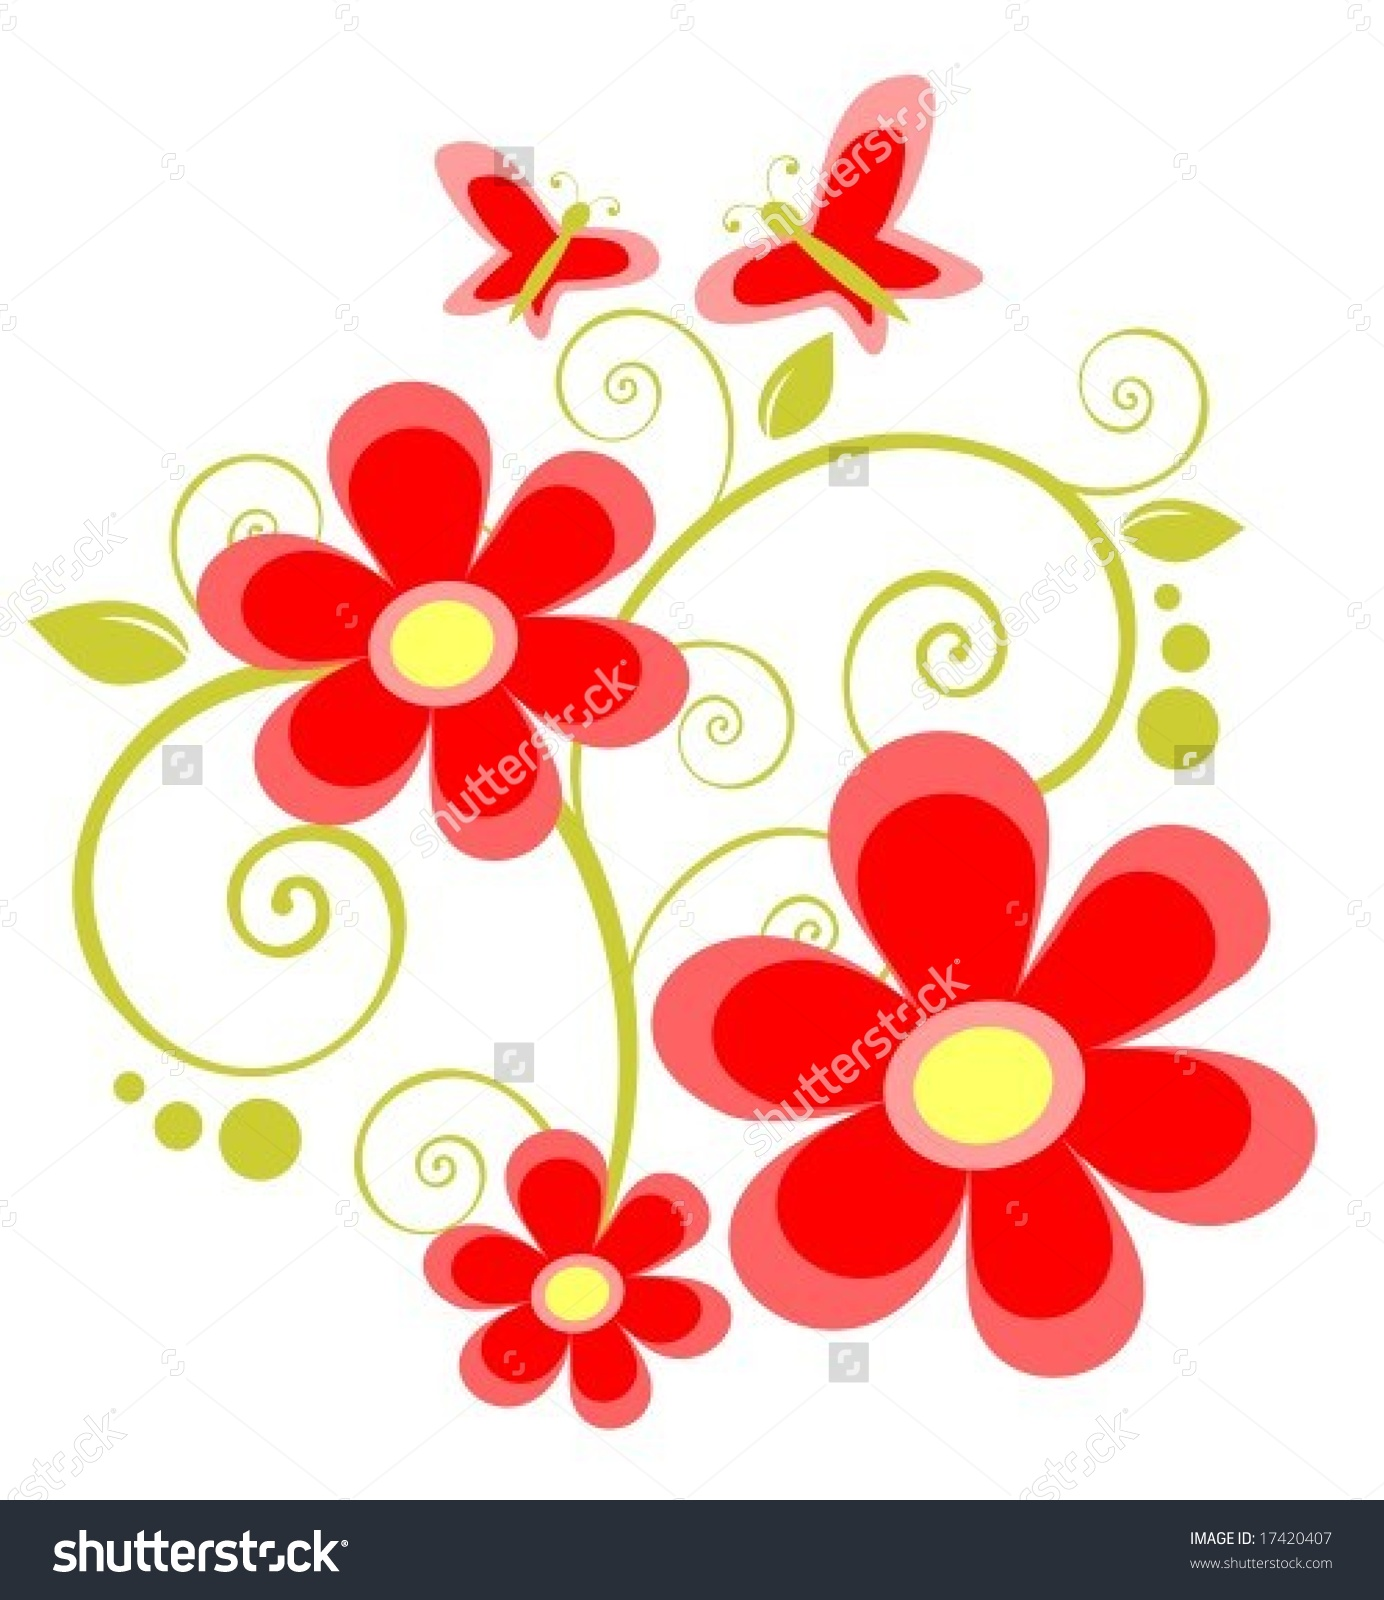 Cartoon Red Flowers Butterflies On White Stock Vector 17420407.